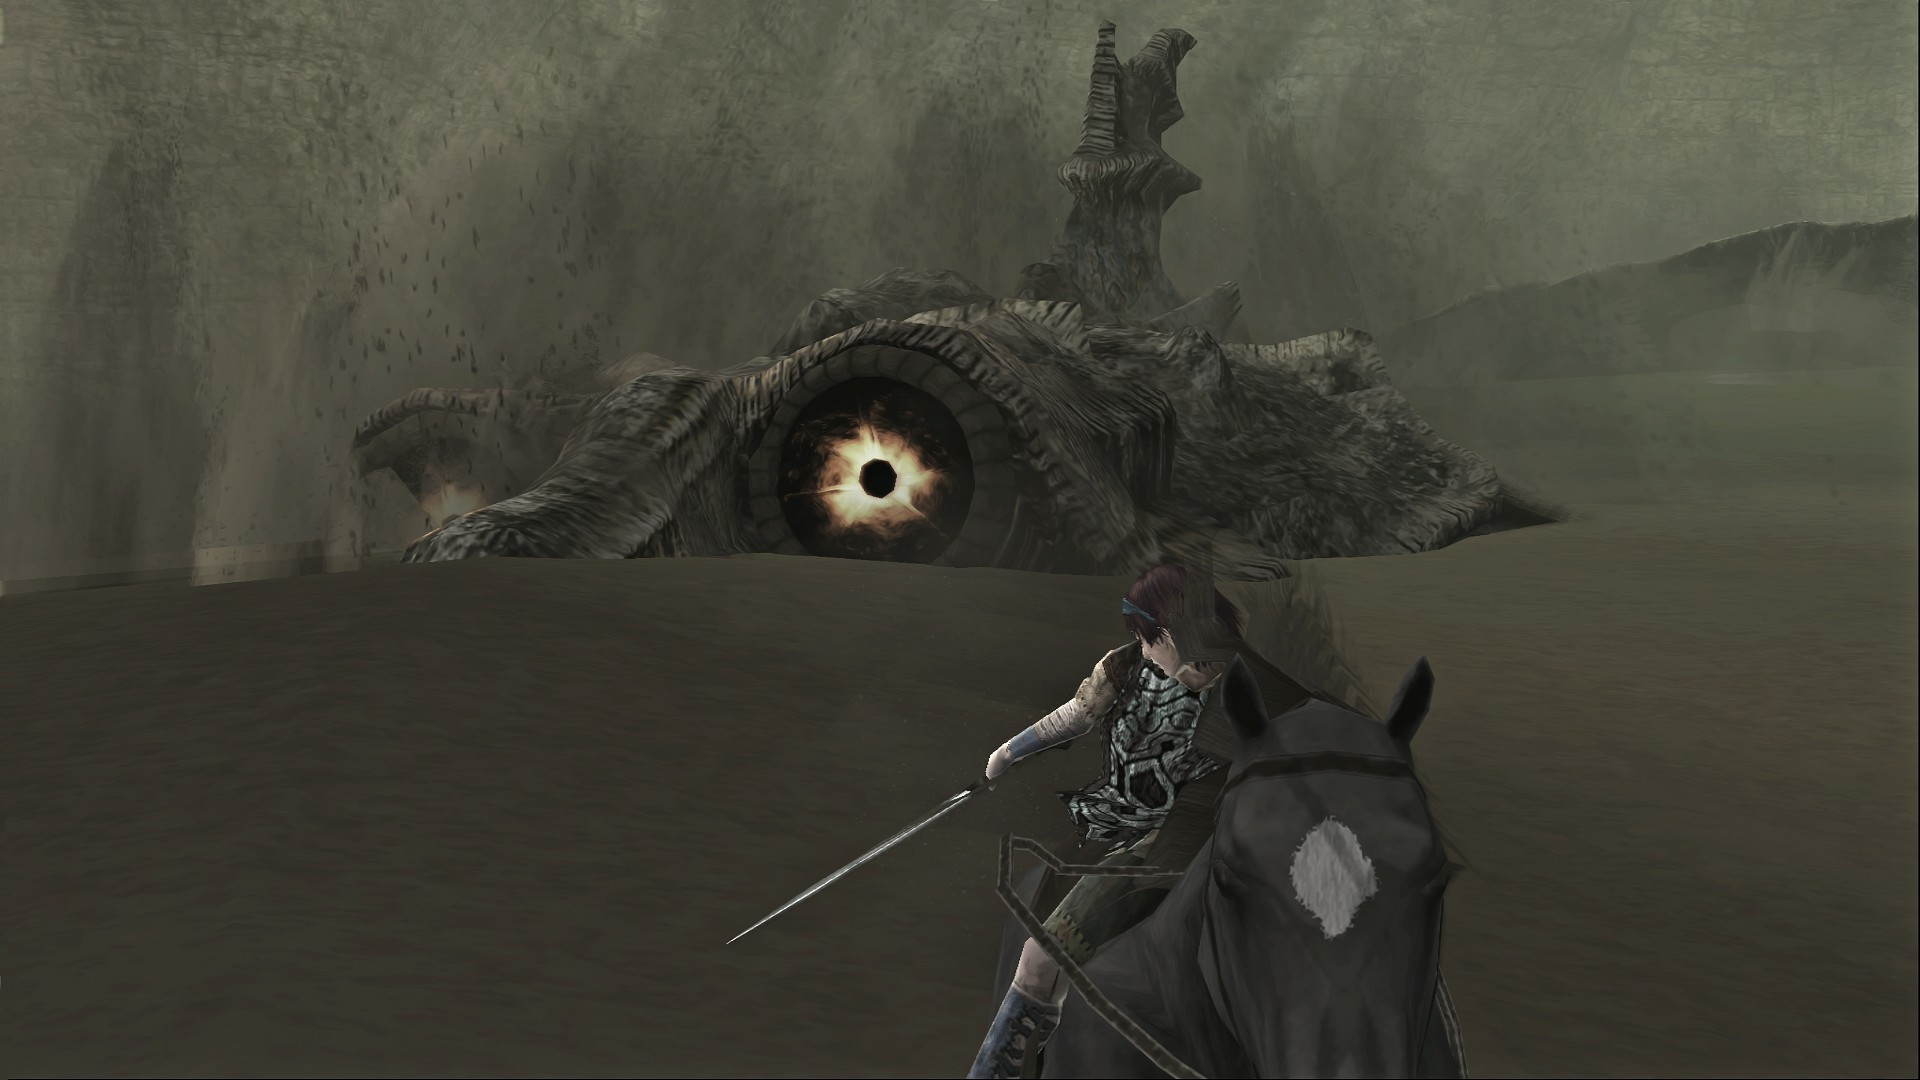 Shadow-of-the-Colossus-SOTC-Wallpaper-Dirge-Sand-